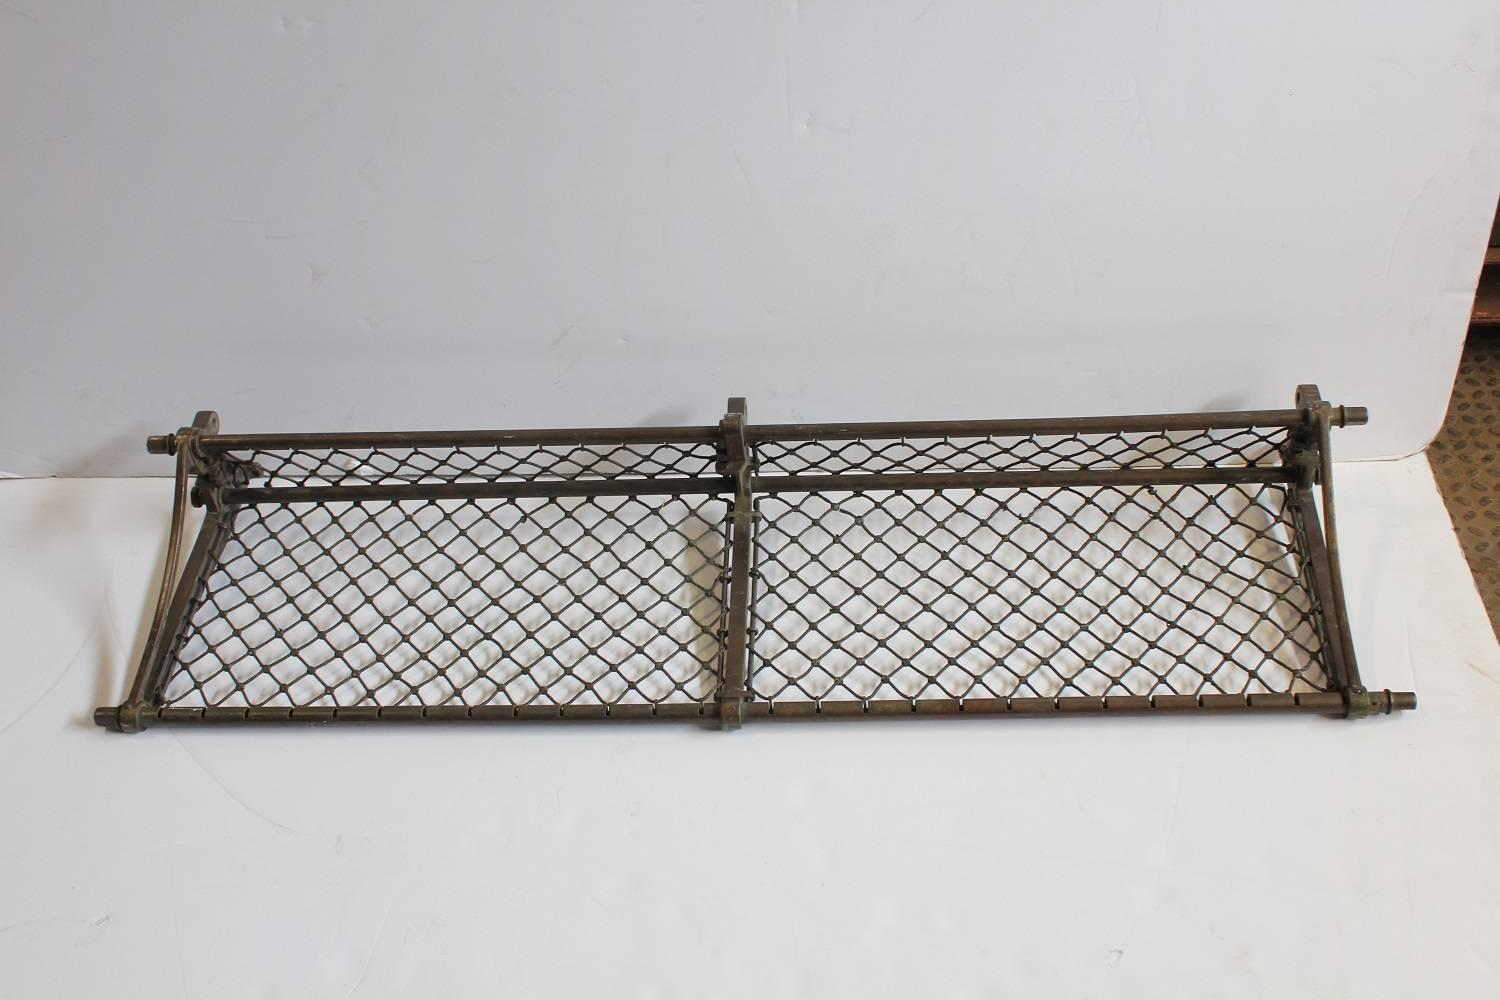 Vintage Suitcase Shelves For Sale Antique American Train Luggage Rack For Sale At 1stdibs